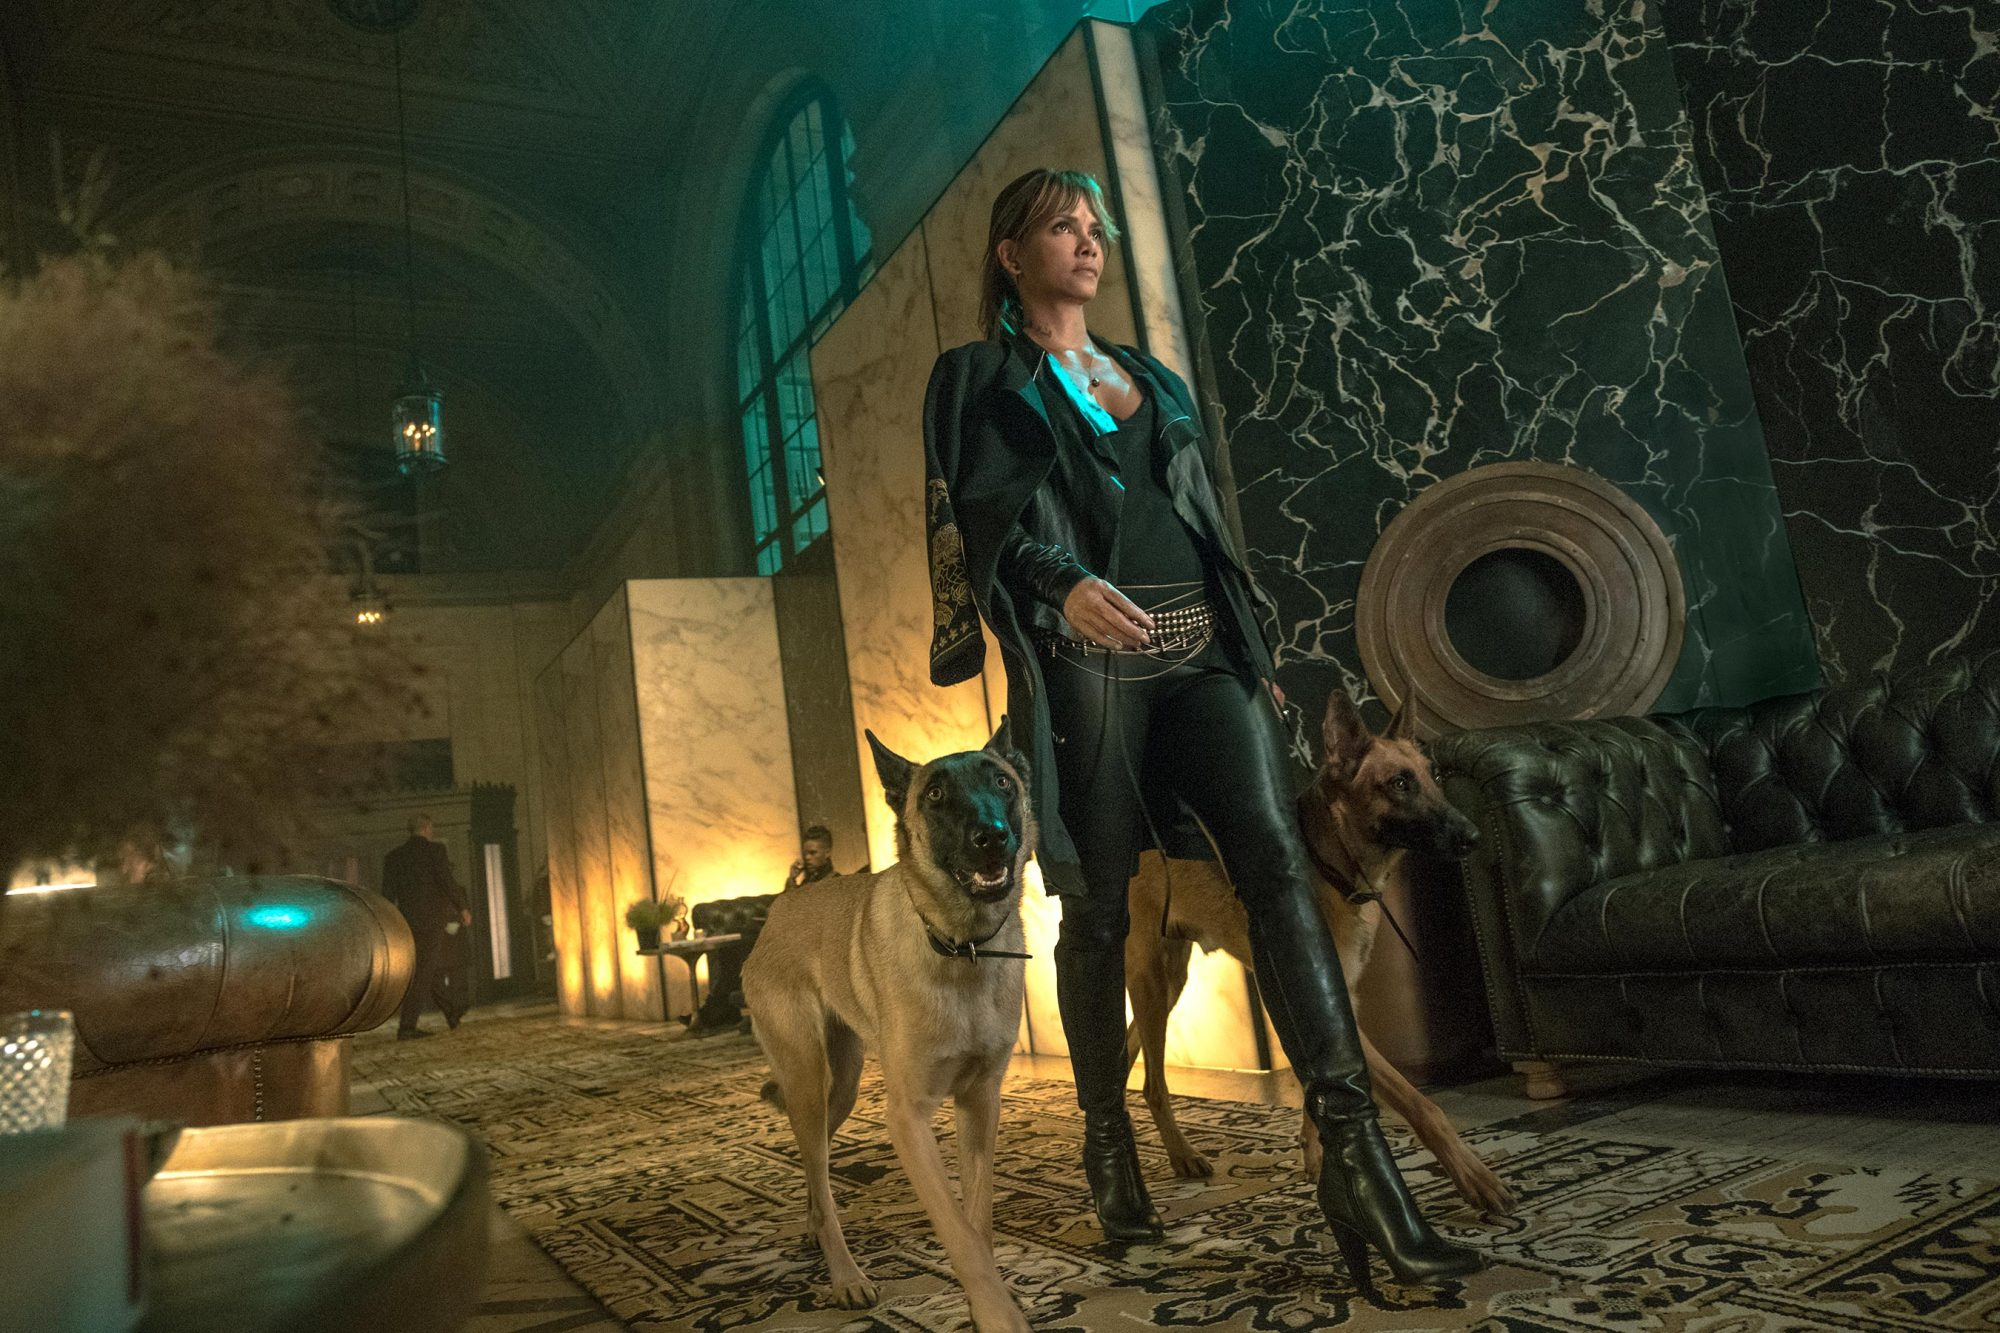 Halle Berry stars as 'Sofia' in JOHN WICK 3. Photo credit: Niko Tavernise